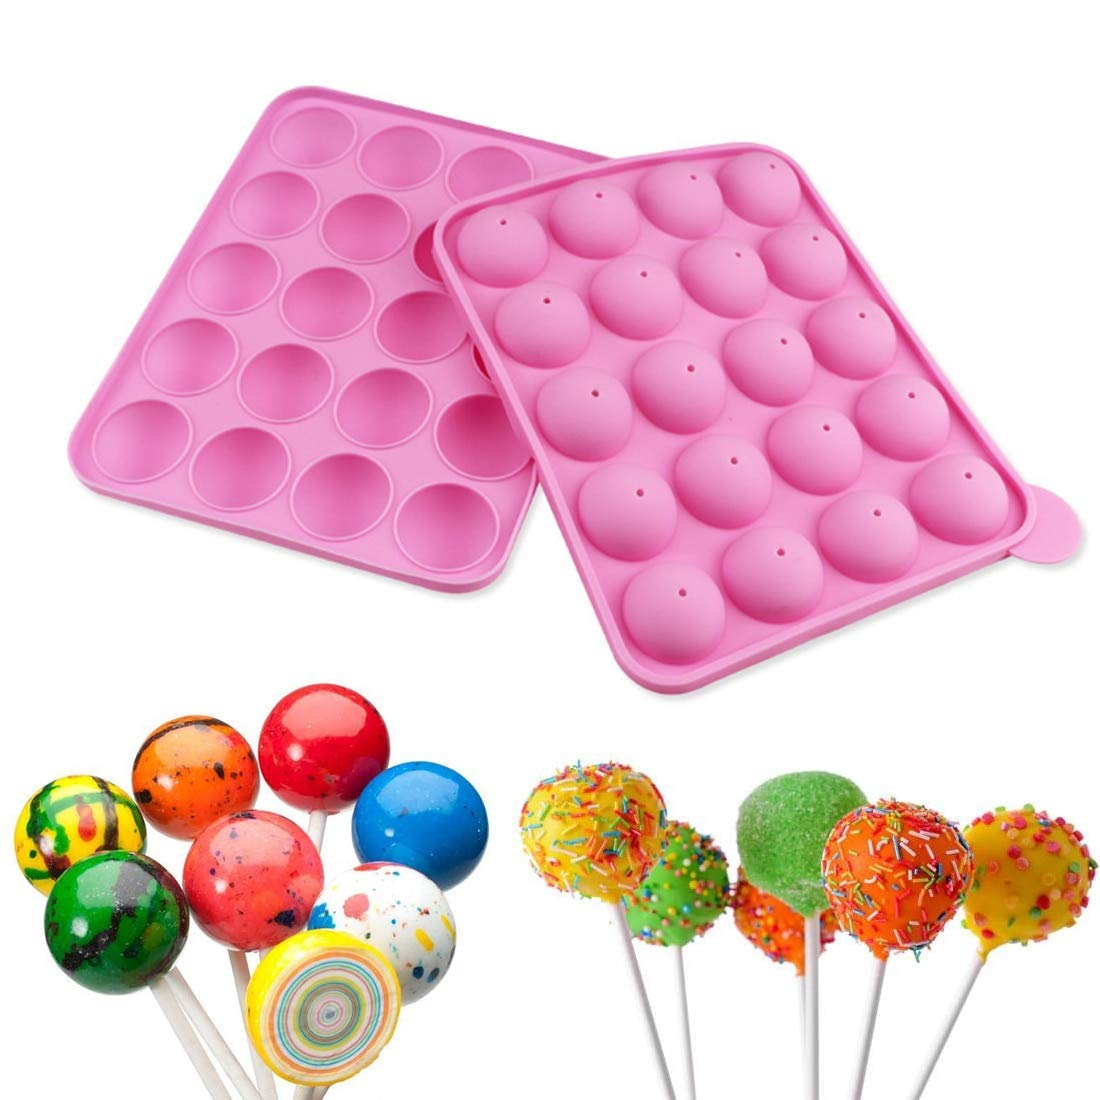 1PC Silicone Cake Pop Mold Cupcake Lollipop Sticks Baking Tray Stick Kitchen Pastry Tools Chocolate Soap Stencils Baking Forms